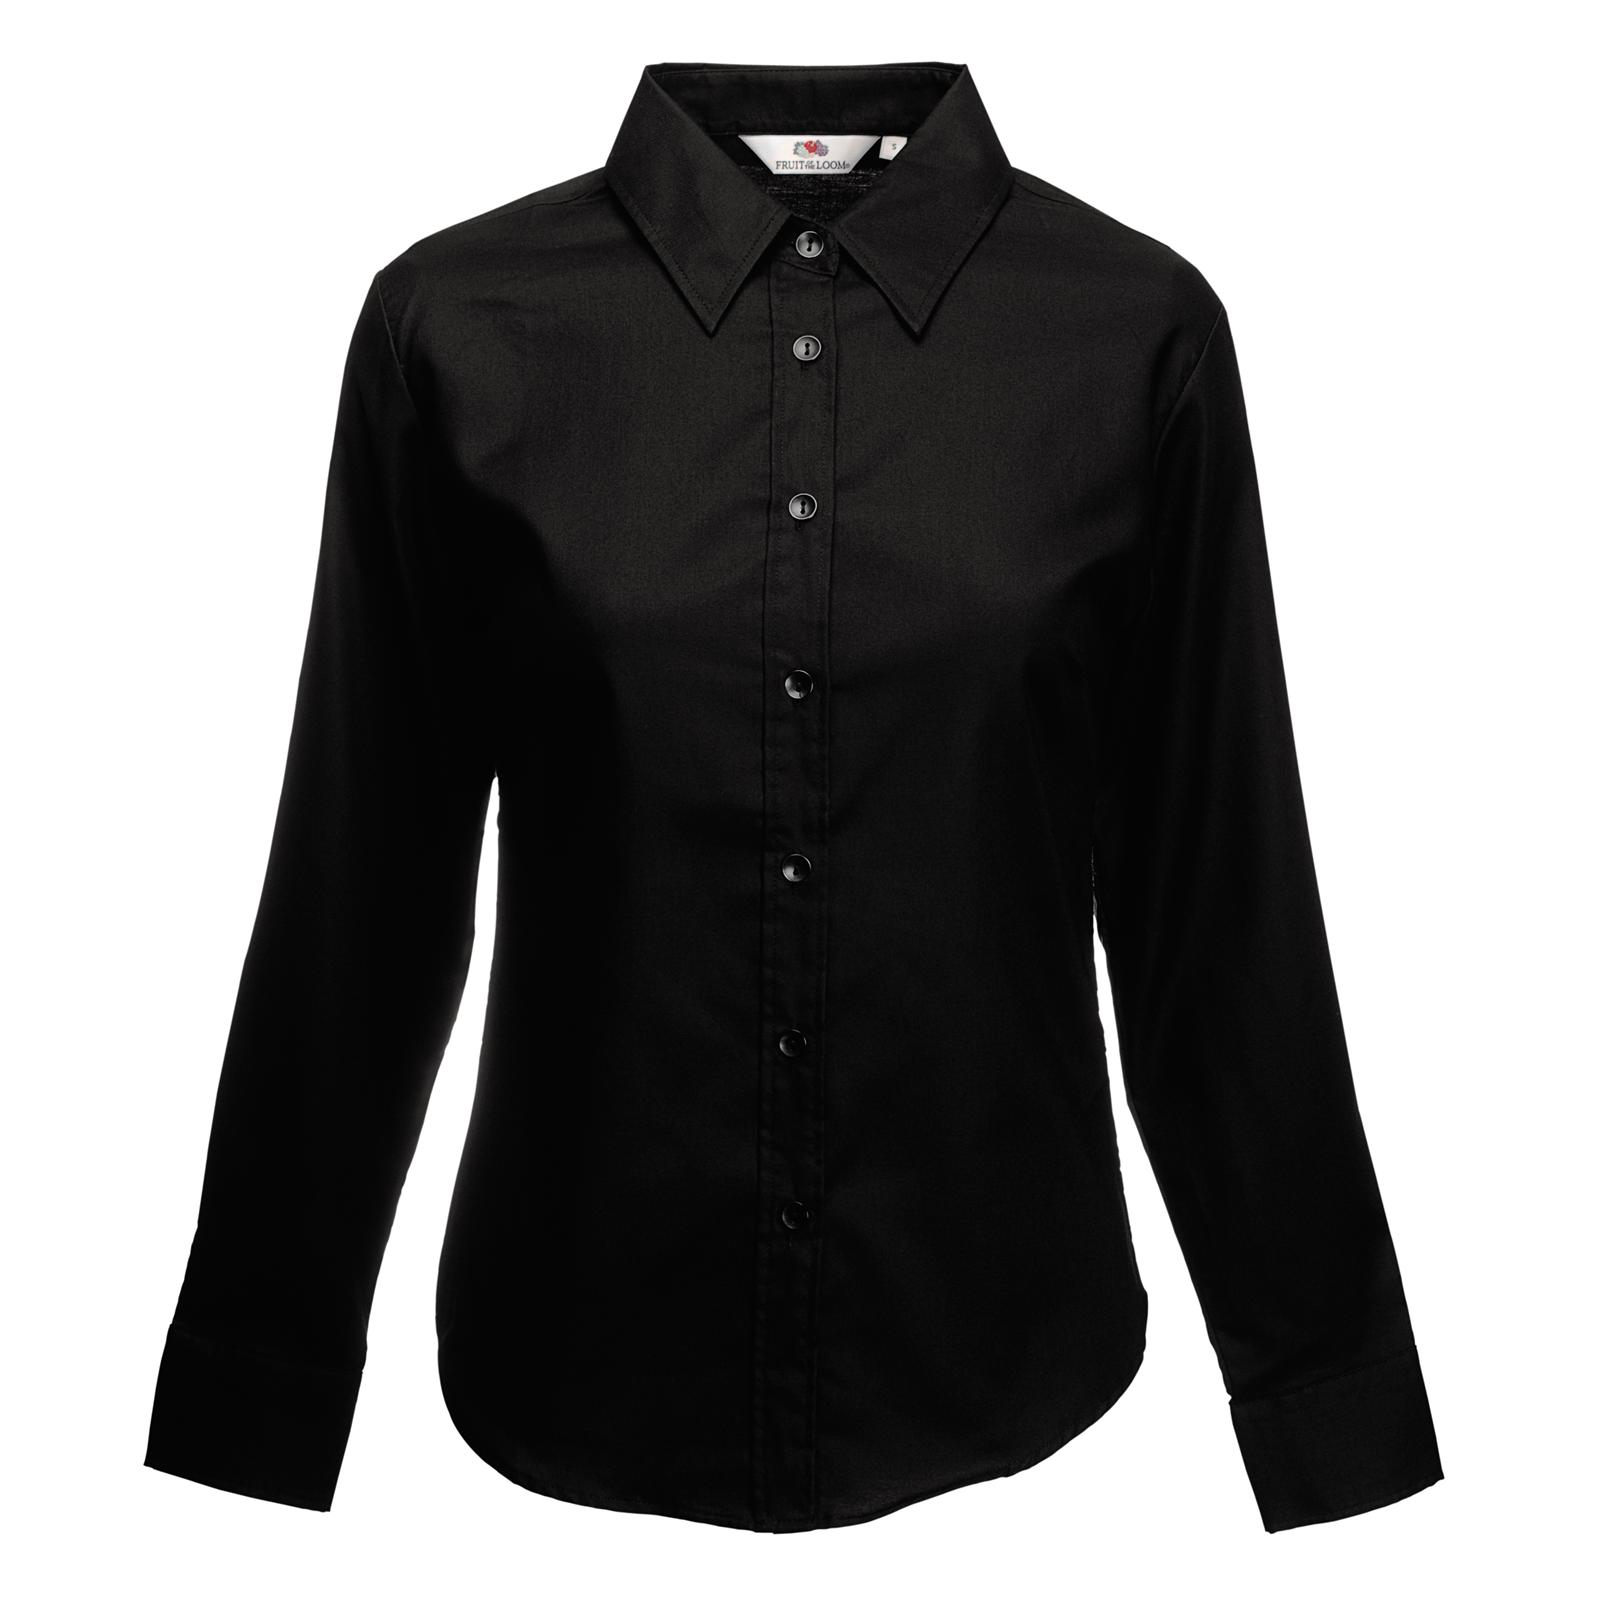 433e39d6b08 New Fruit of the Loom Womens Lady-Fit Oxford Long Sleeve Shirt 5 ...